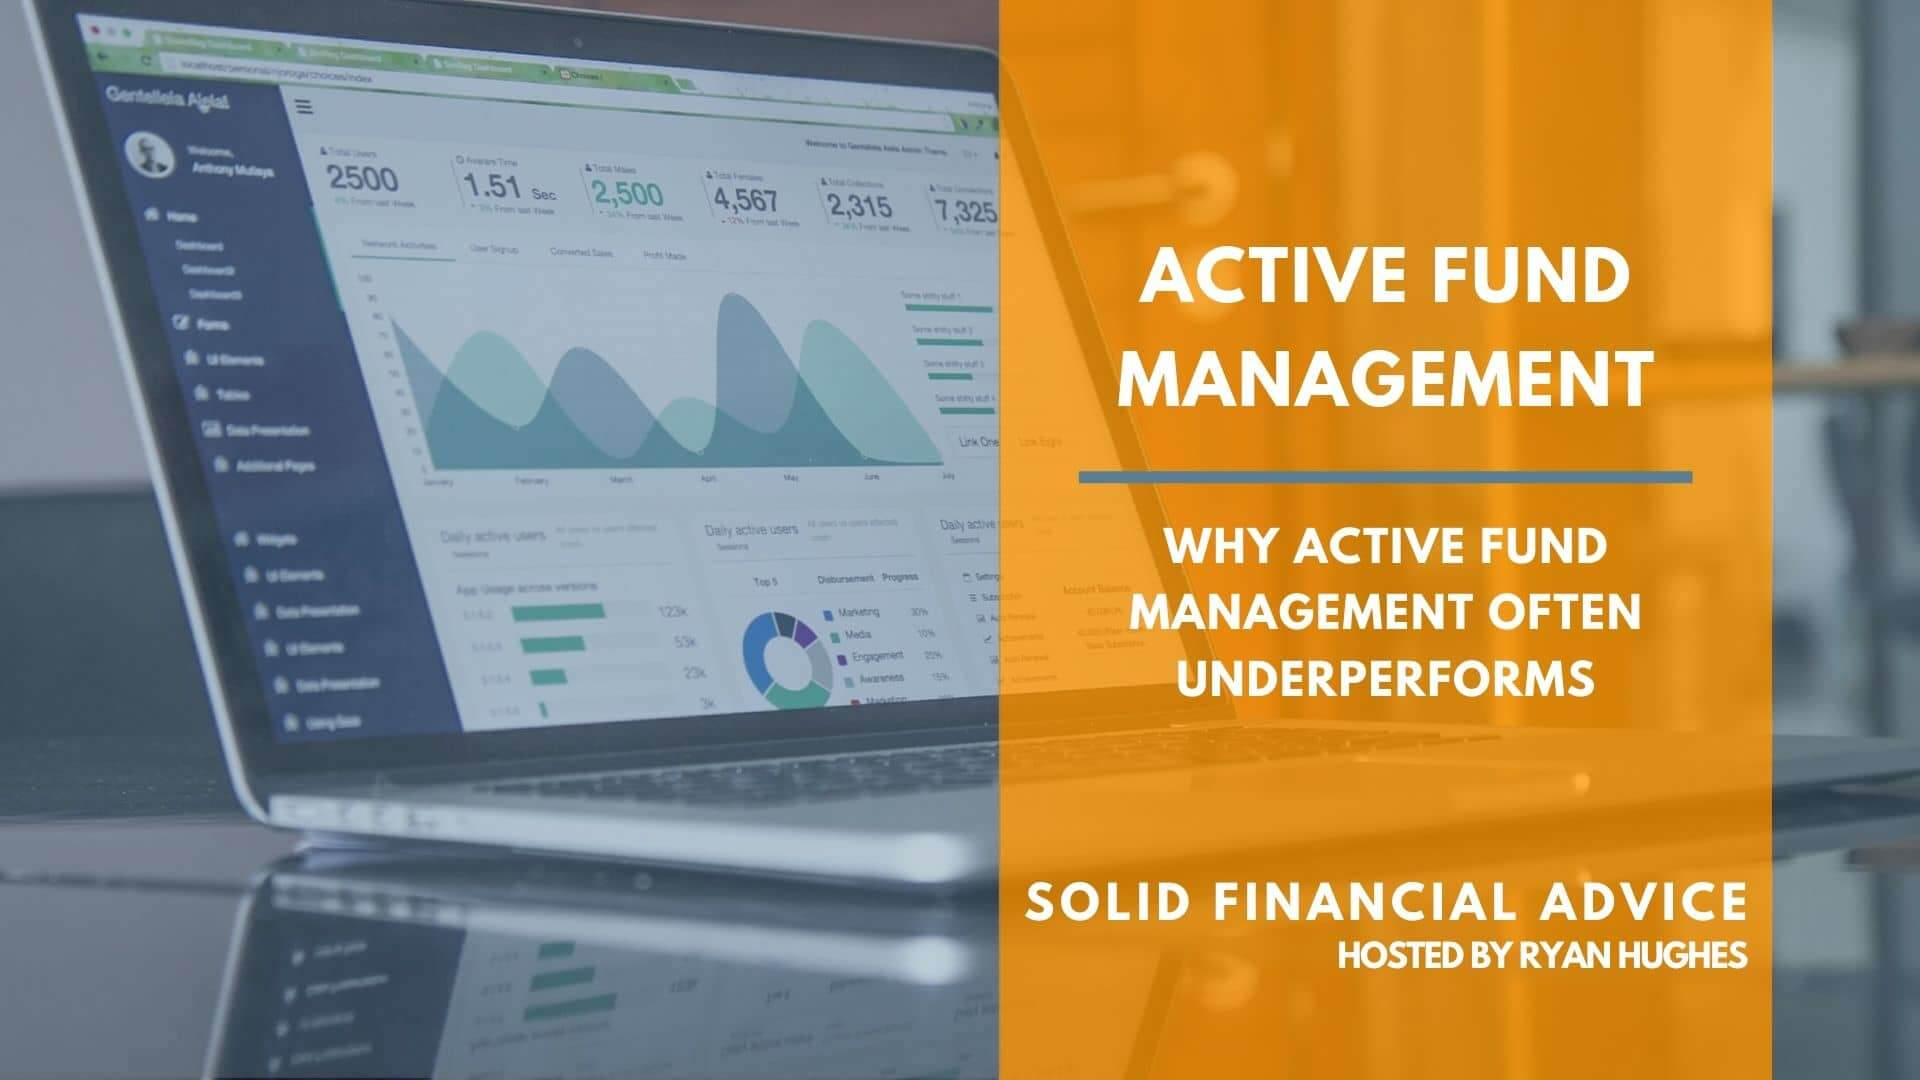 Why Active Fund Management Often Underperforms